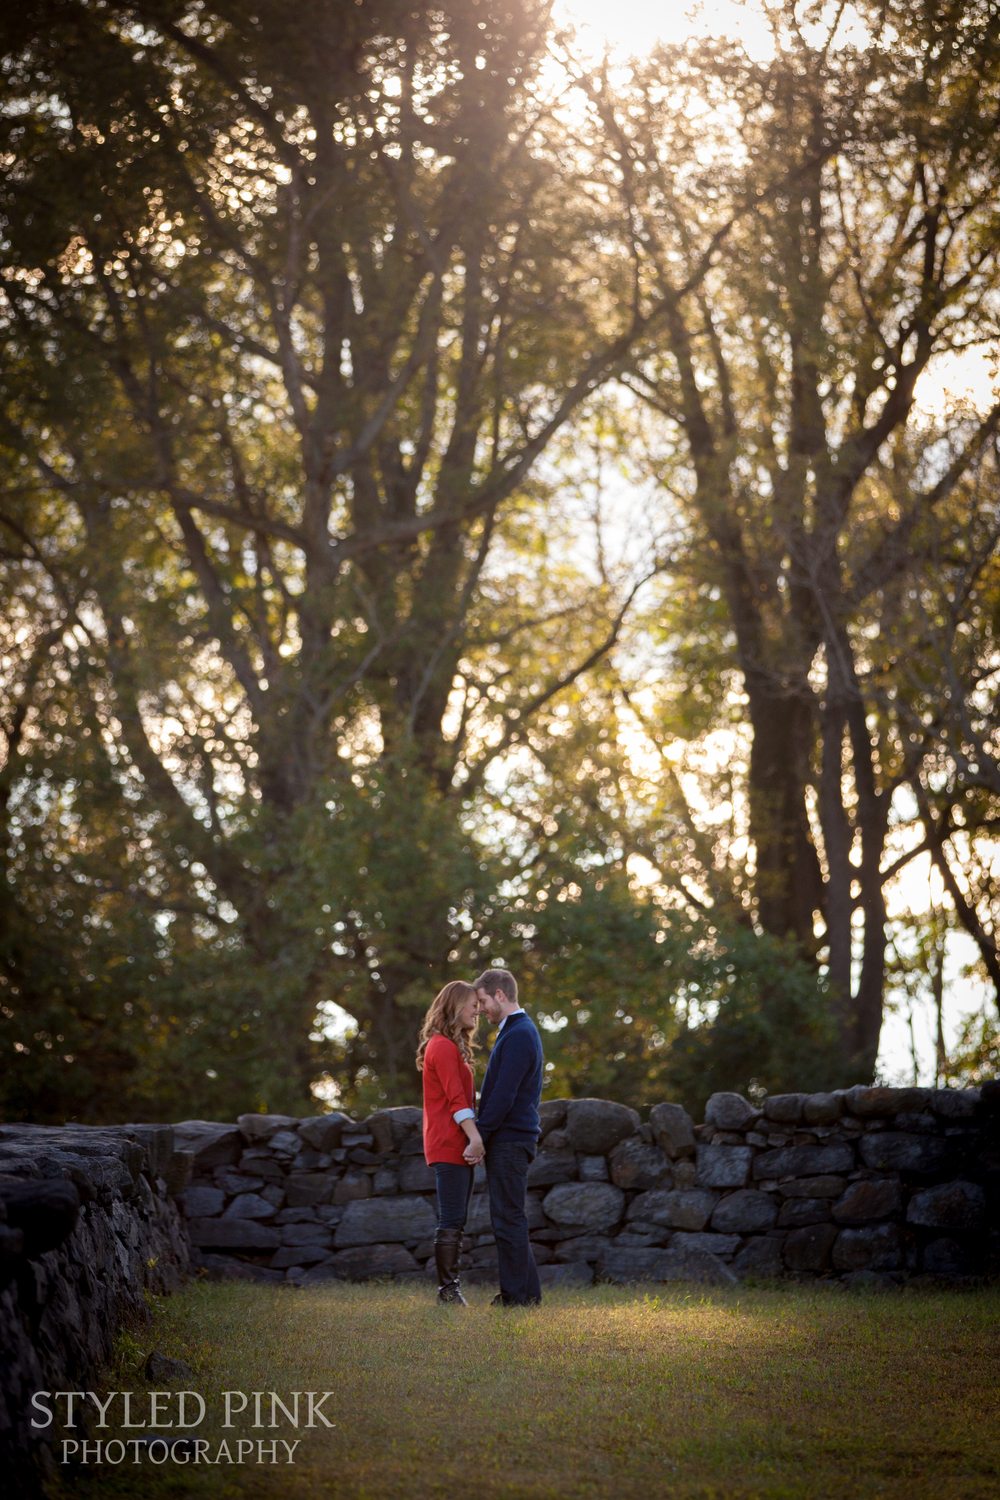 styled-pink-brandywine-state-park-engagement-4